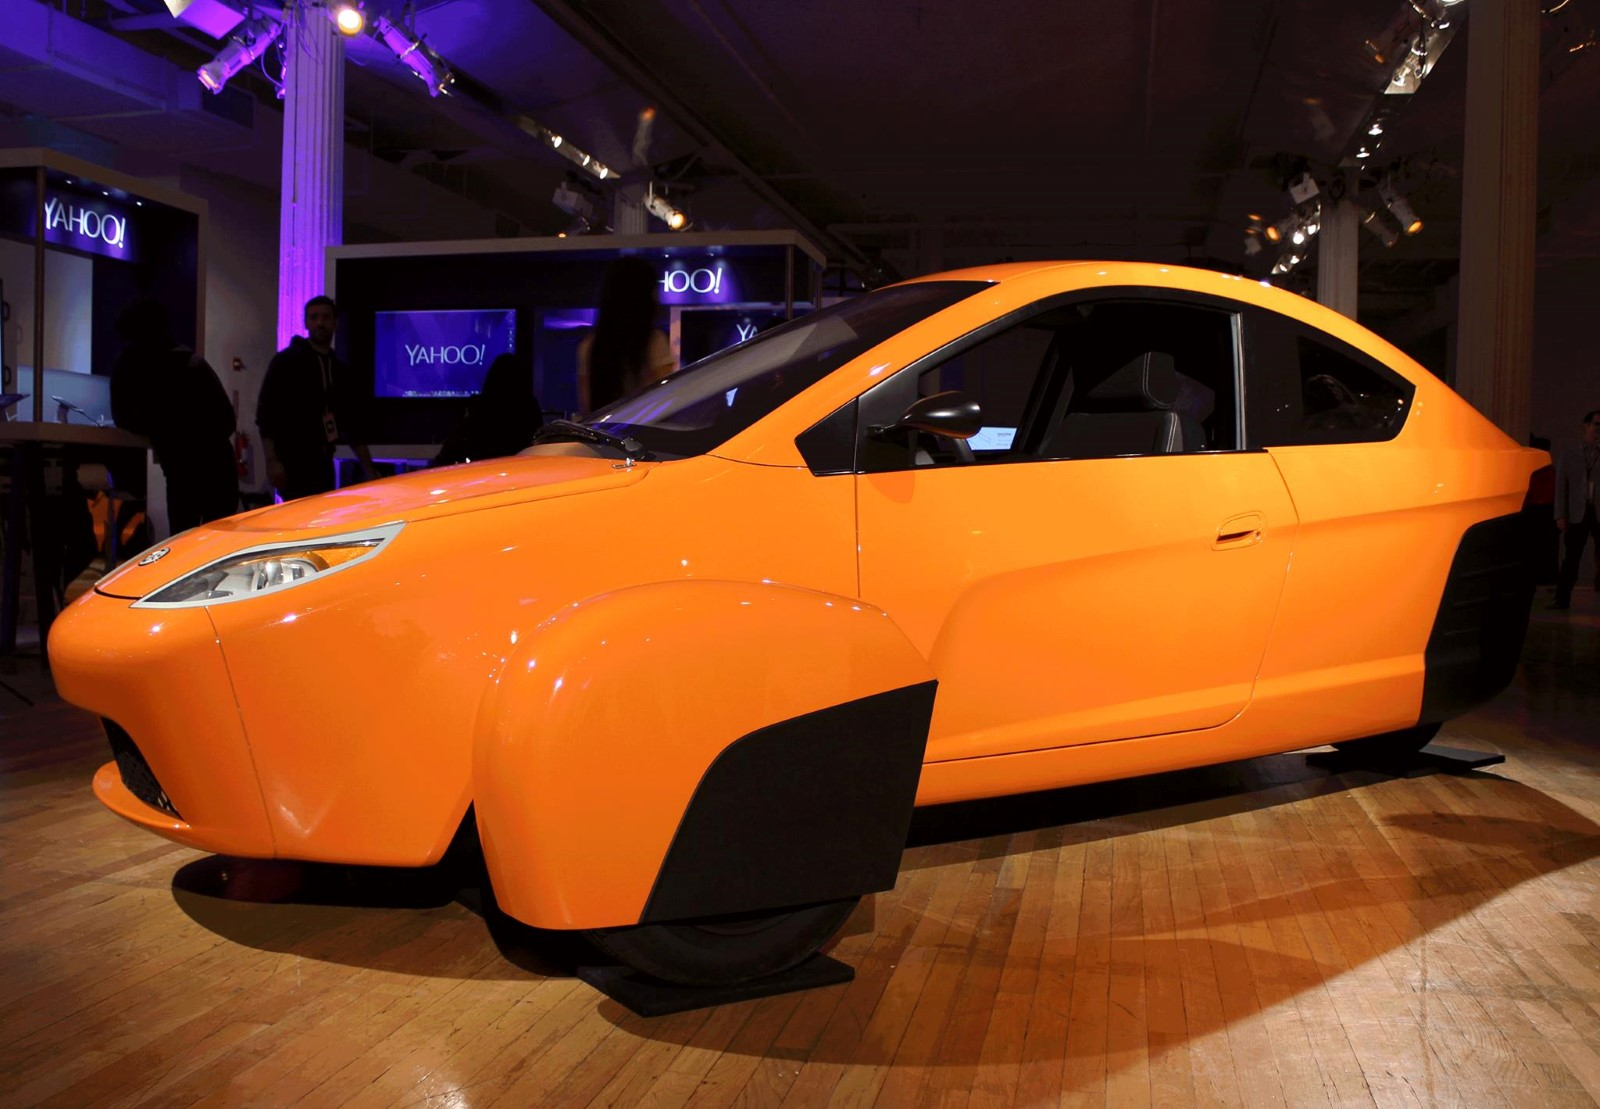 Elio 84 Mpg Three Wheel Prototype Driven In Parking Lot